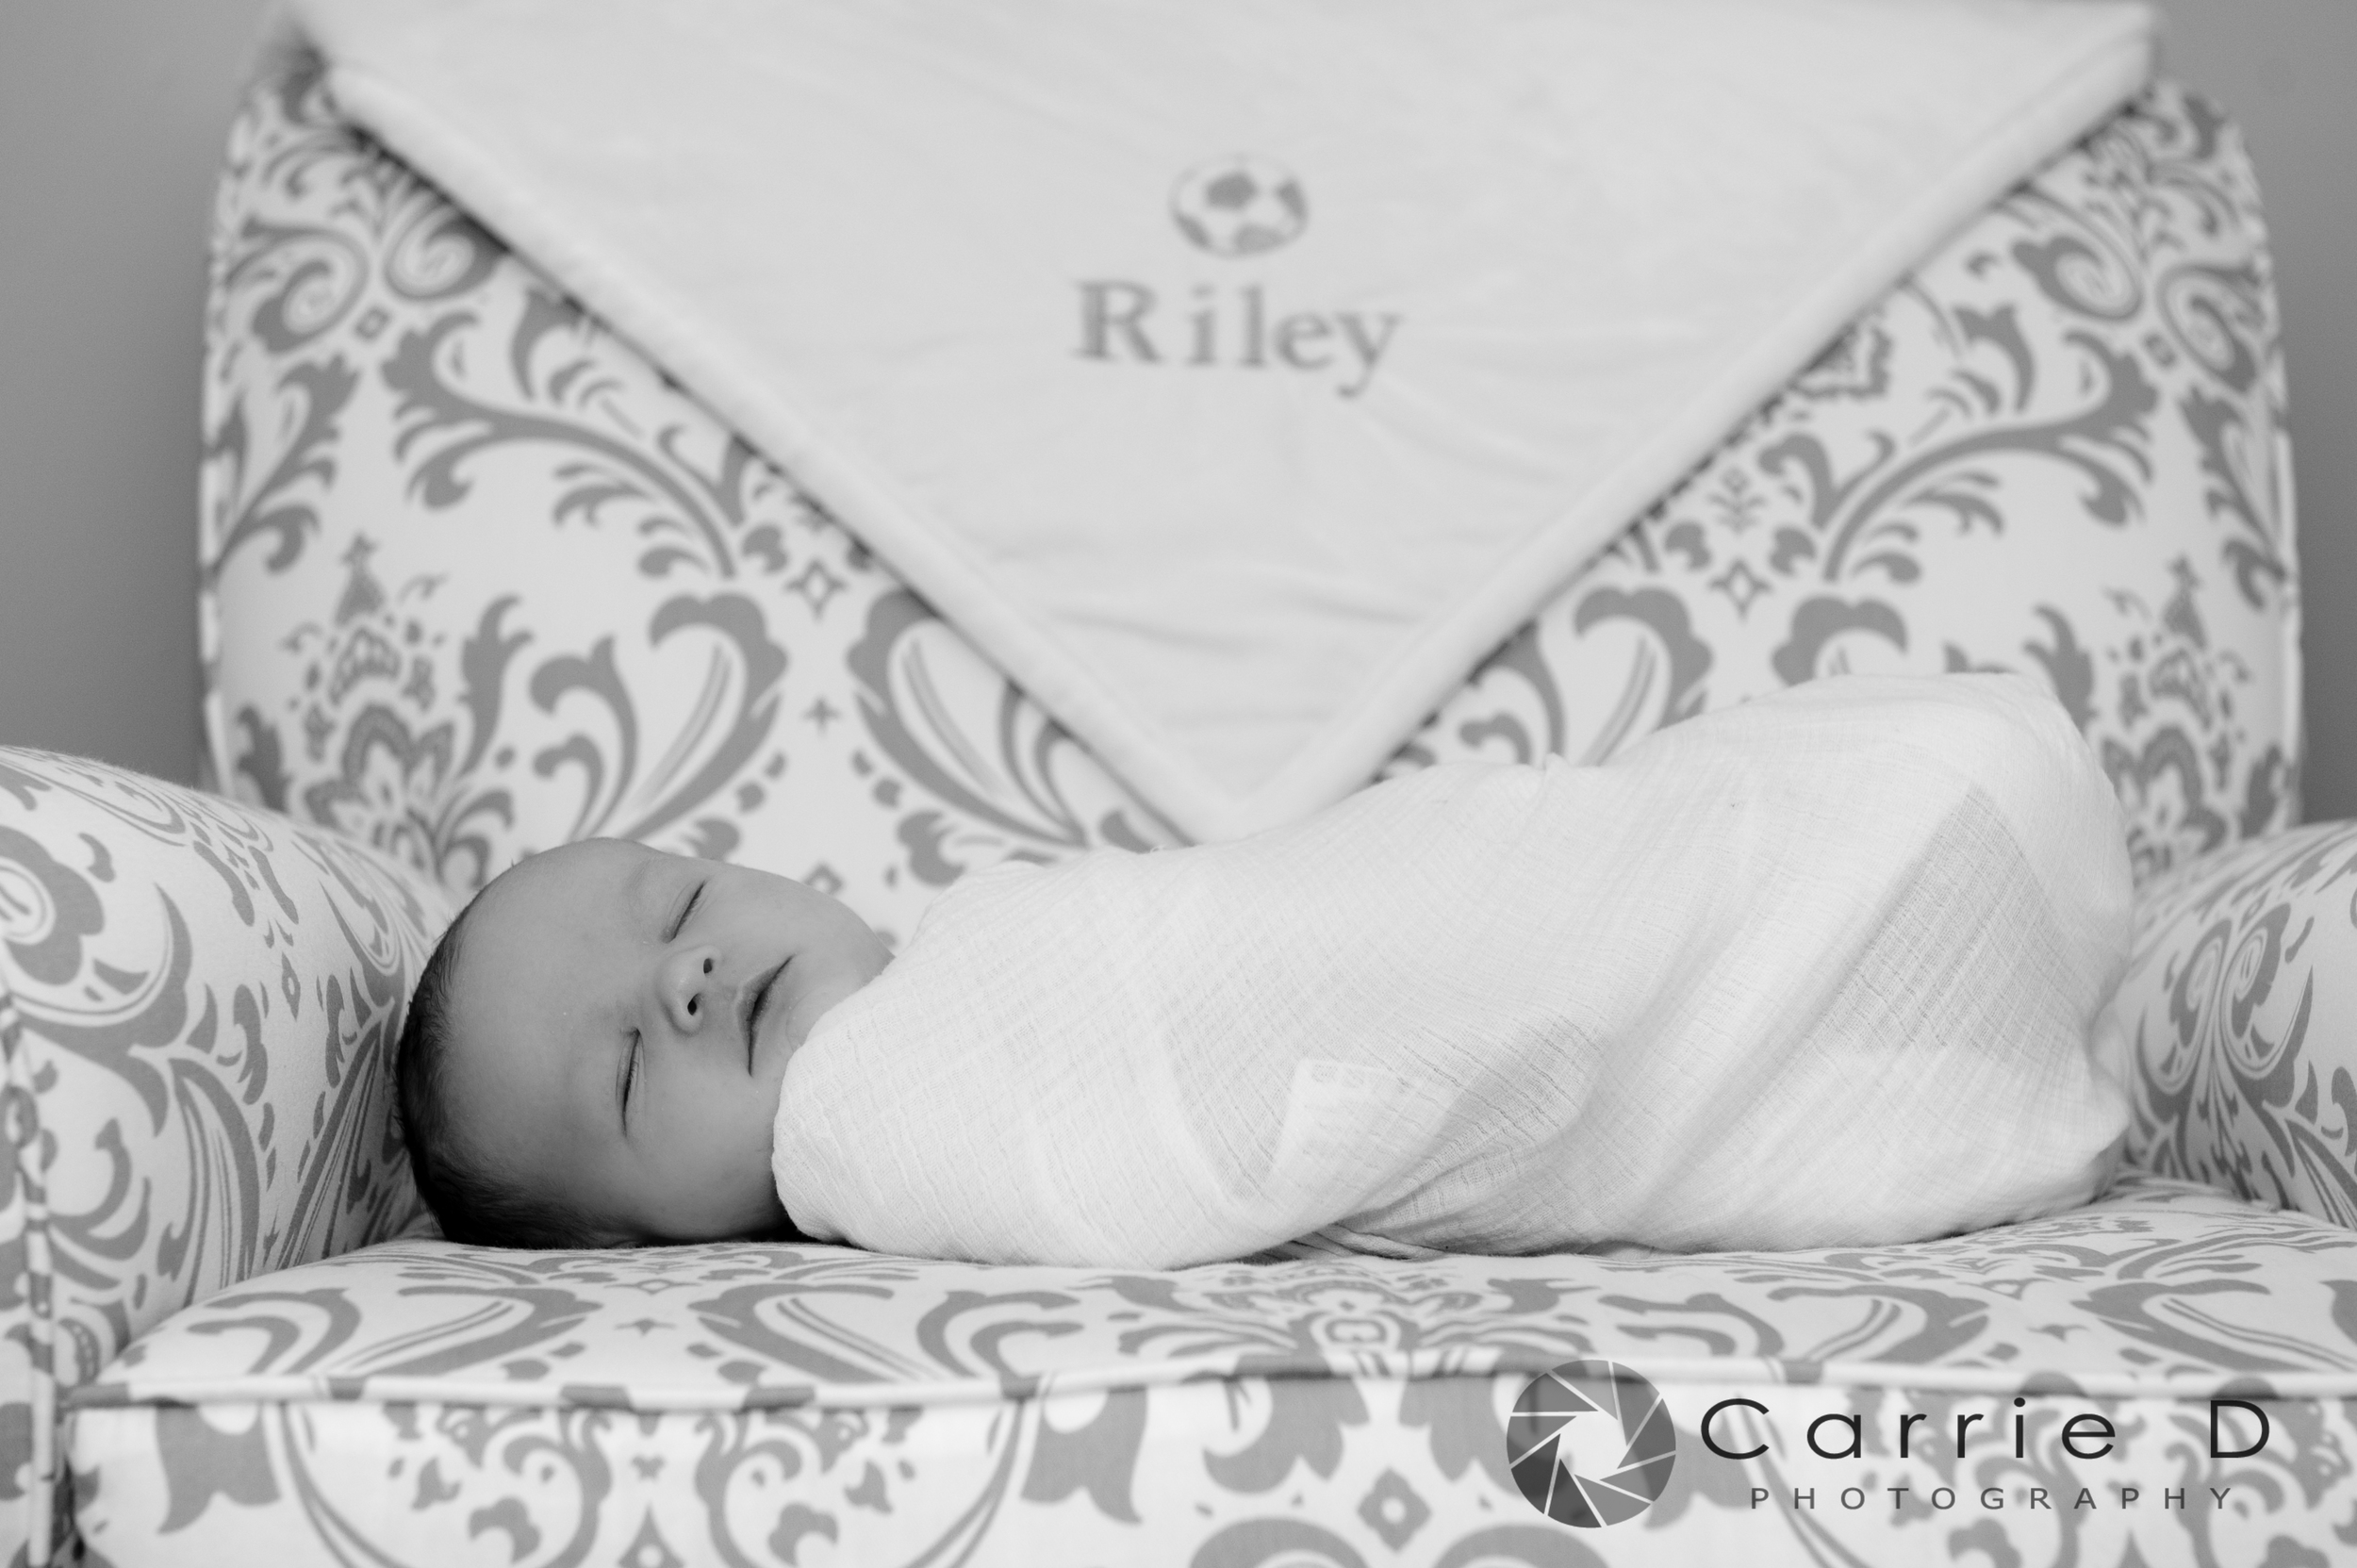 Wilmington DE Photographer – Wilmington DE Portrait Photographer – Wilmington DE Family Photographer - Wilmington DE Newborn Photographer – Wilmington DE Infant Photographer – Wilmington DE Sibling Photographer – Wilmington DE Natural Light Photographer – Wilmington DE Lifestyle Photographer – Wilmington DE Natural Light Portrait